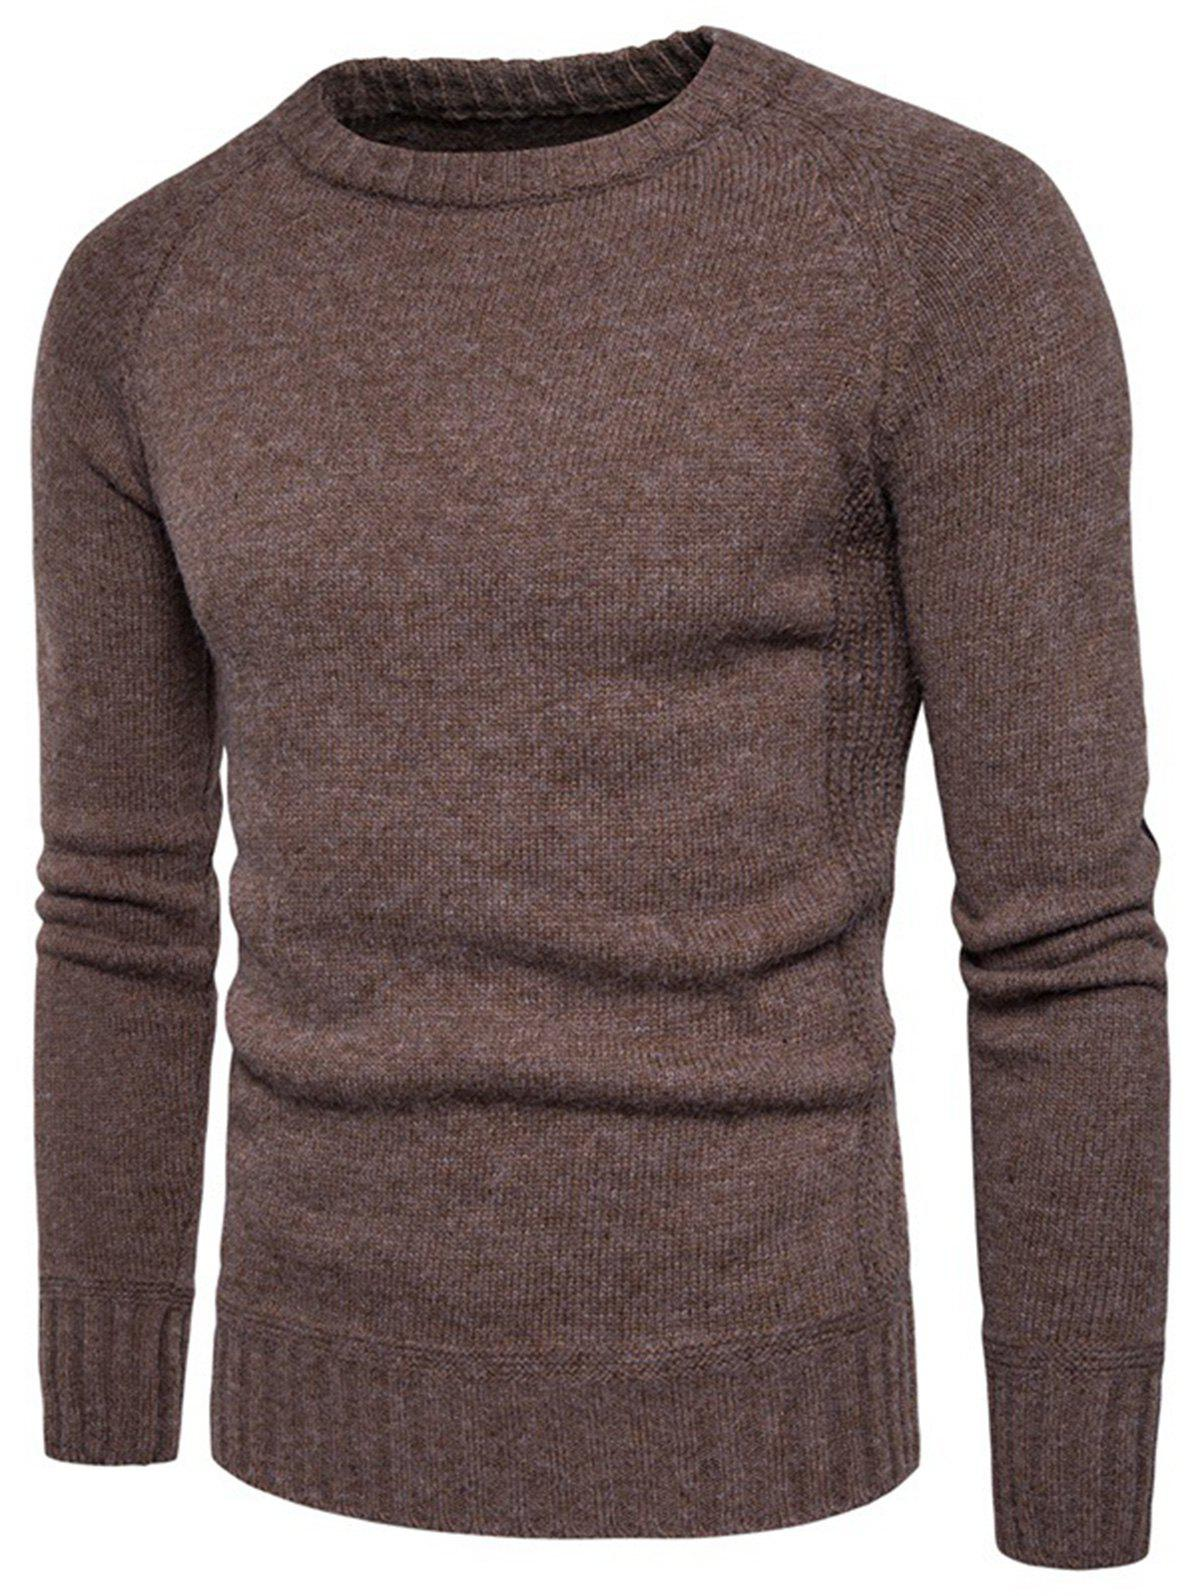 Buy Elbow Patch Raglan Sleeve Sweater